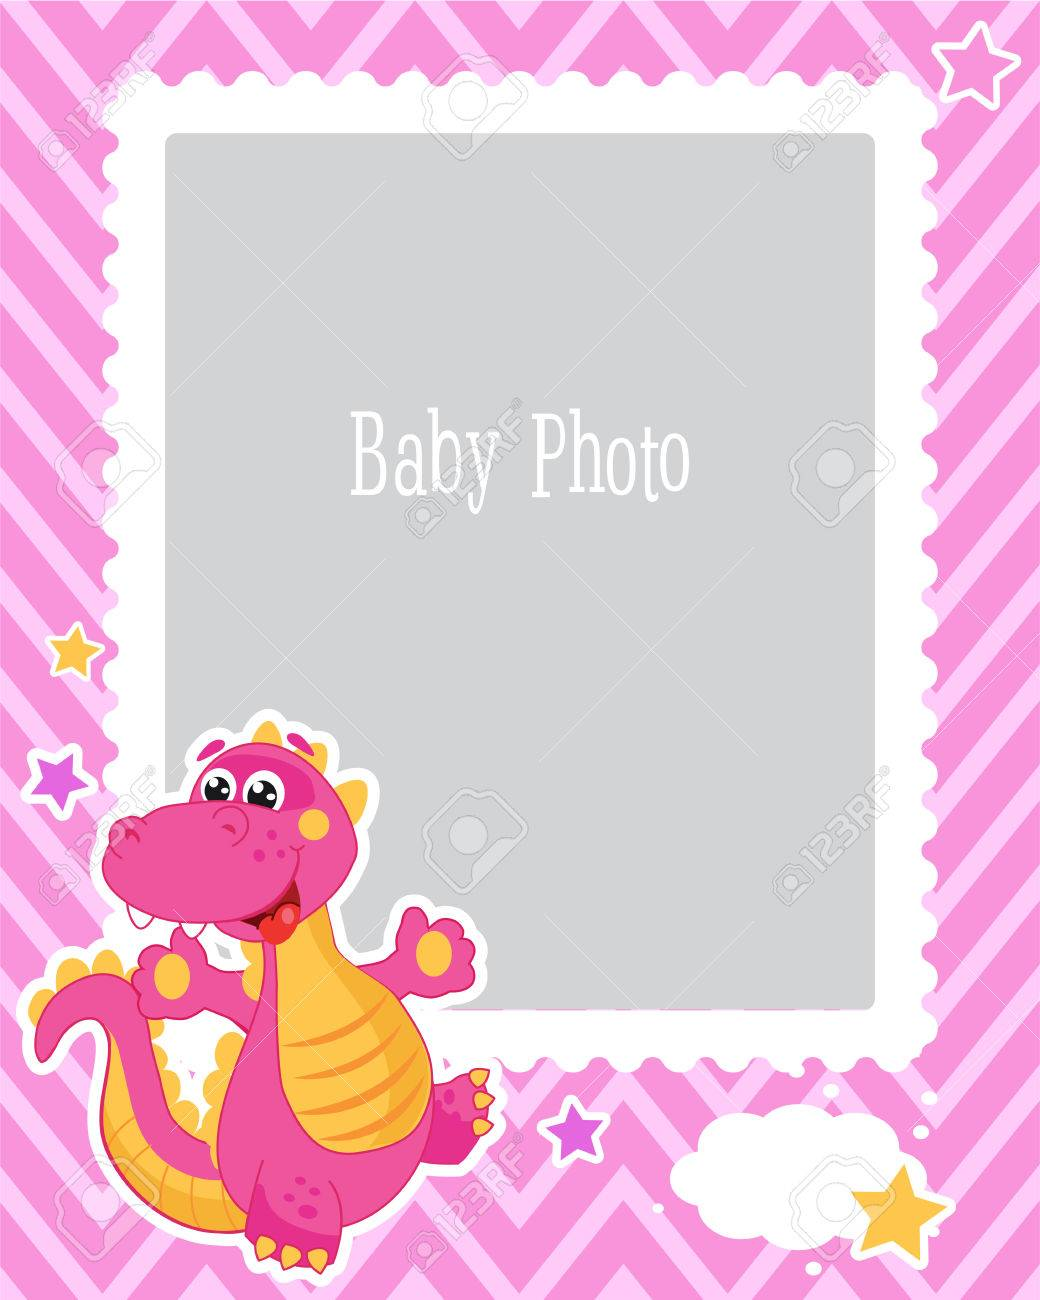 photo frame design for kids with dinosaur decorative template